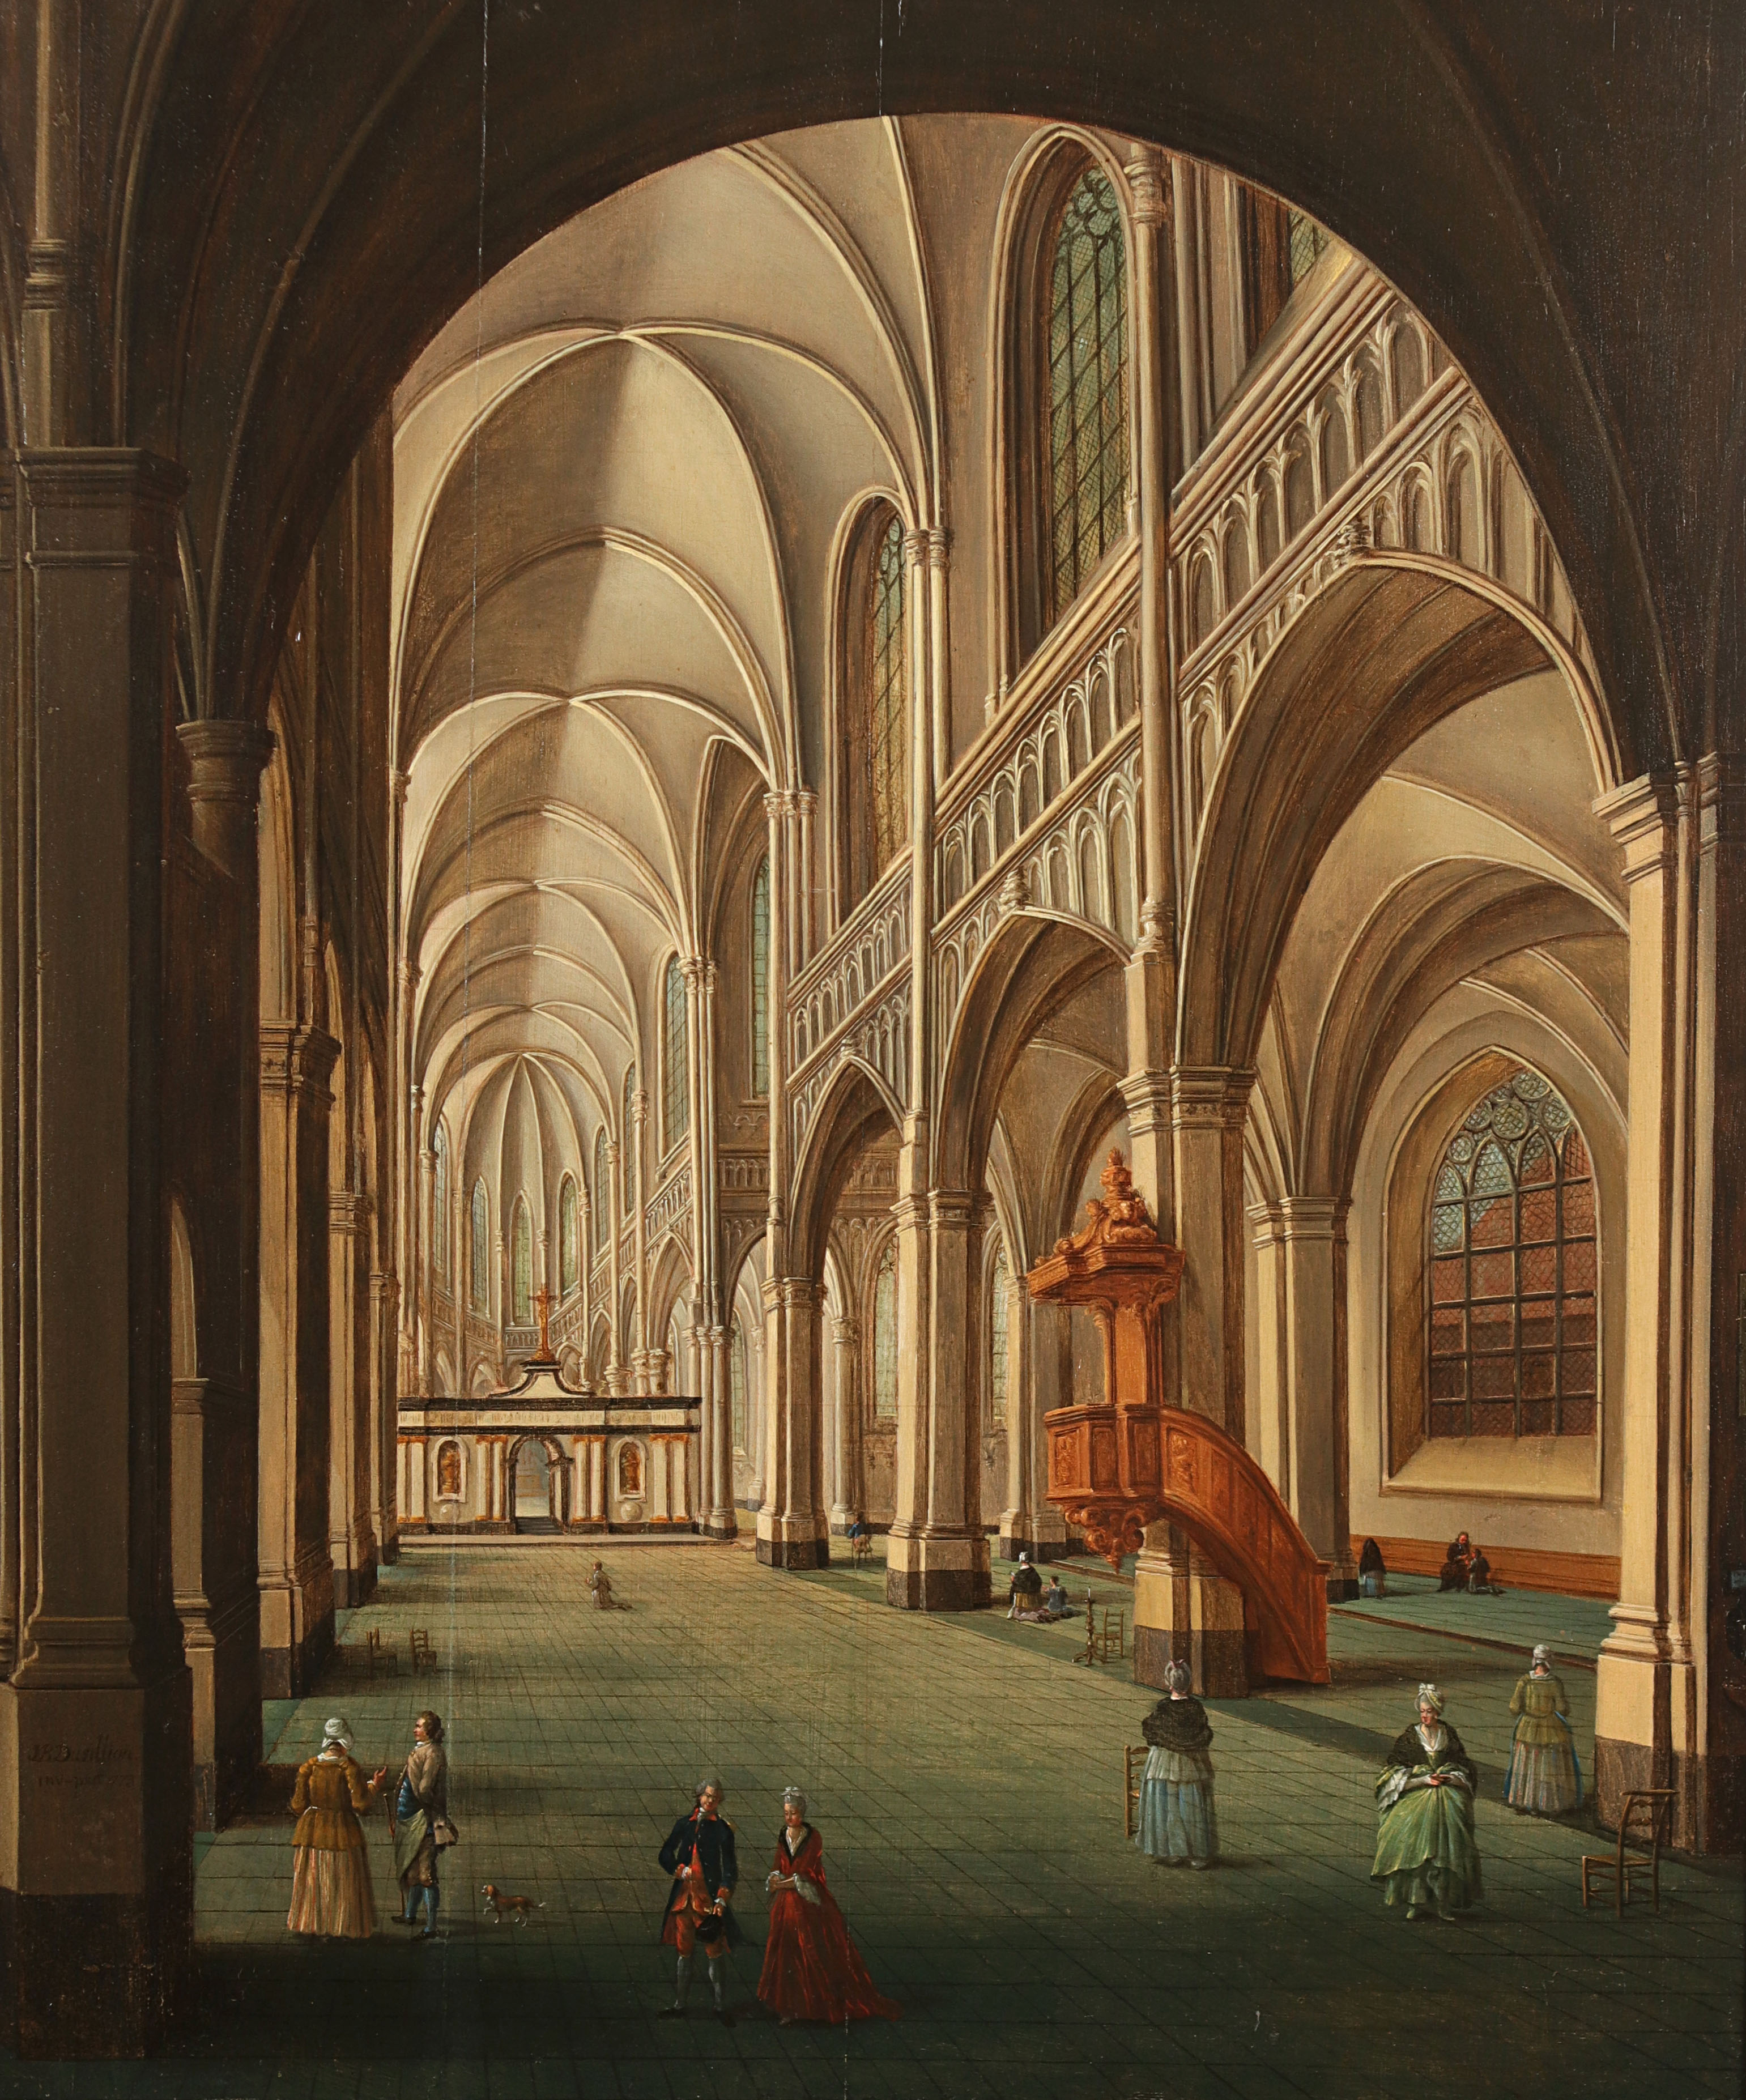 Jean-Baptiste Dussillon, 'Church Interior', oil on panel. Photo: Hessink's